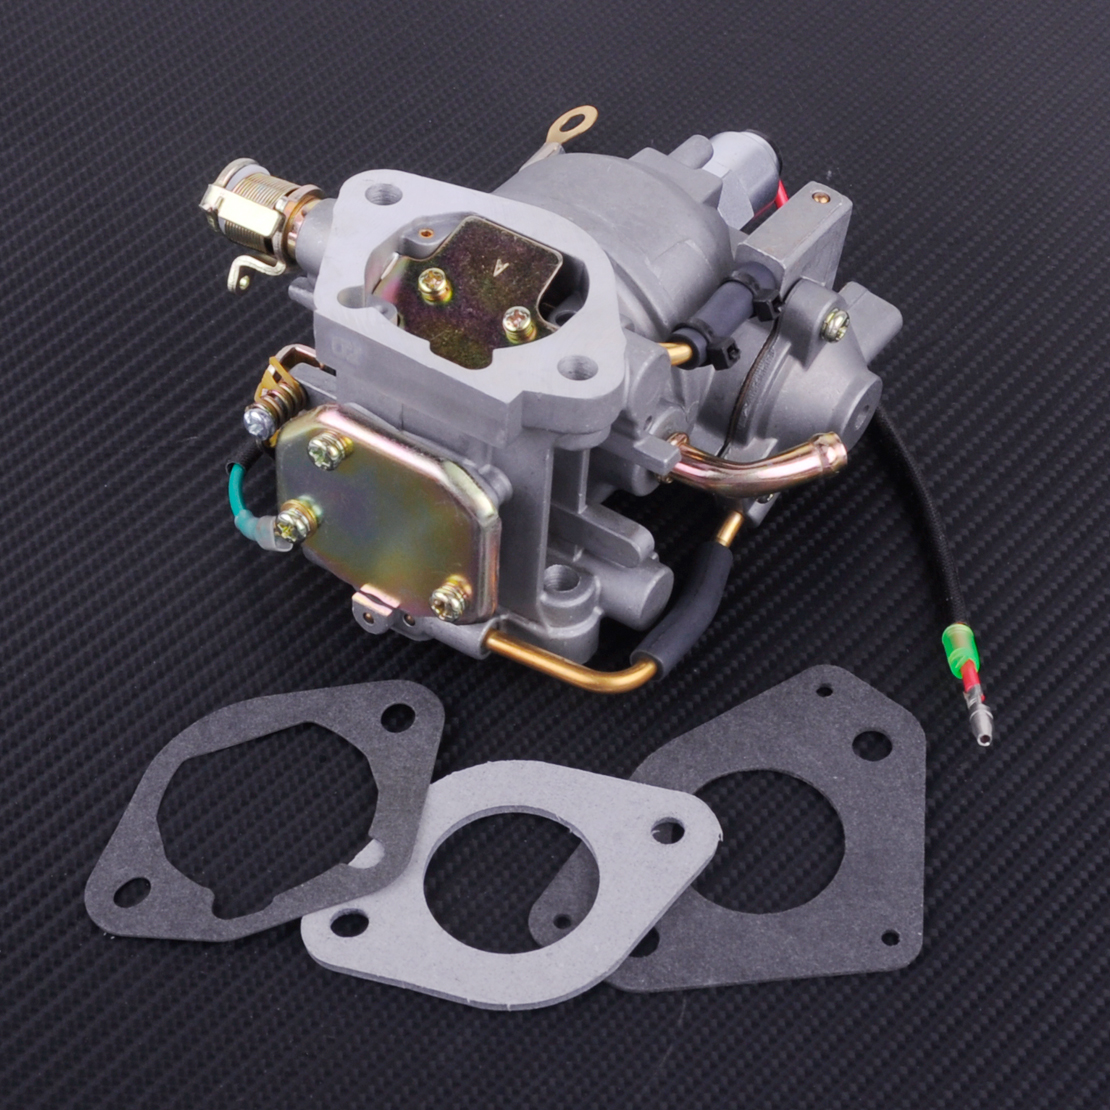 LETAOSK New Carburetor Carb with Solenoid Auto Engine Part fit for Kohler CV730 CV740 24853102-S 24-853-102 Replacement new carburetor fit for willys jeep solex design civilian l head t 069